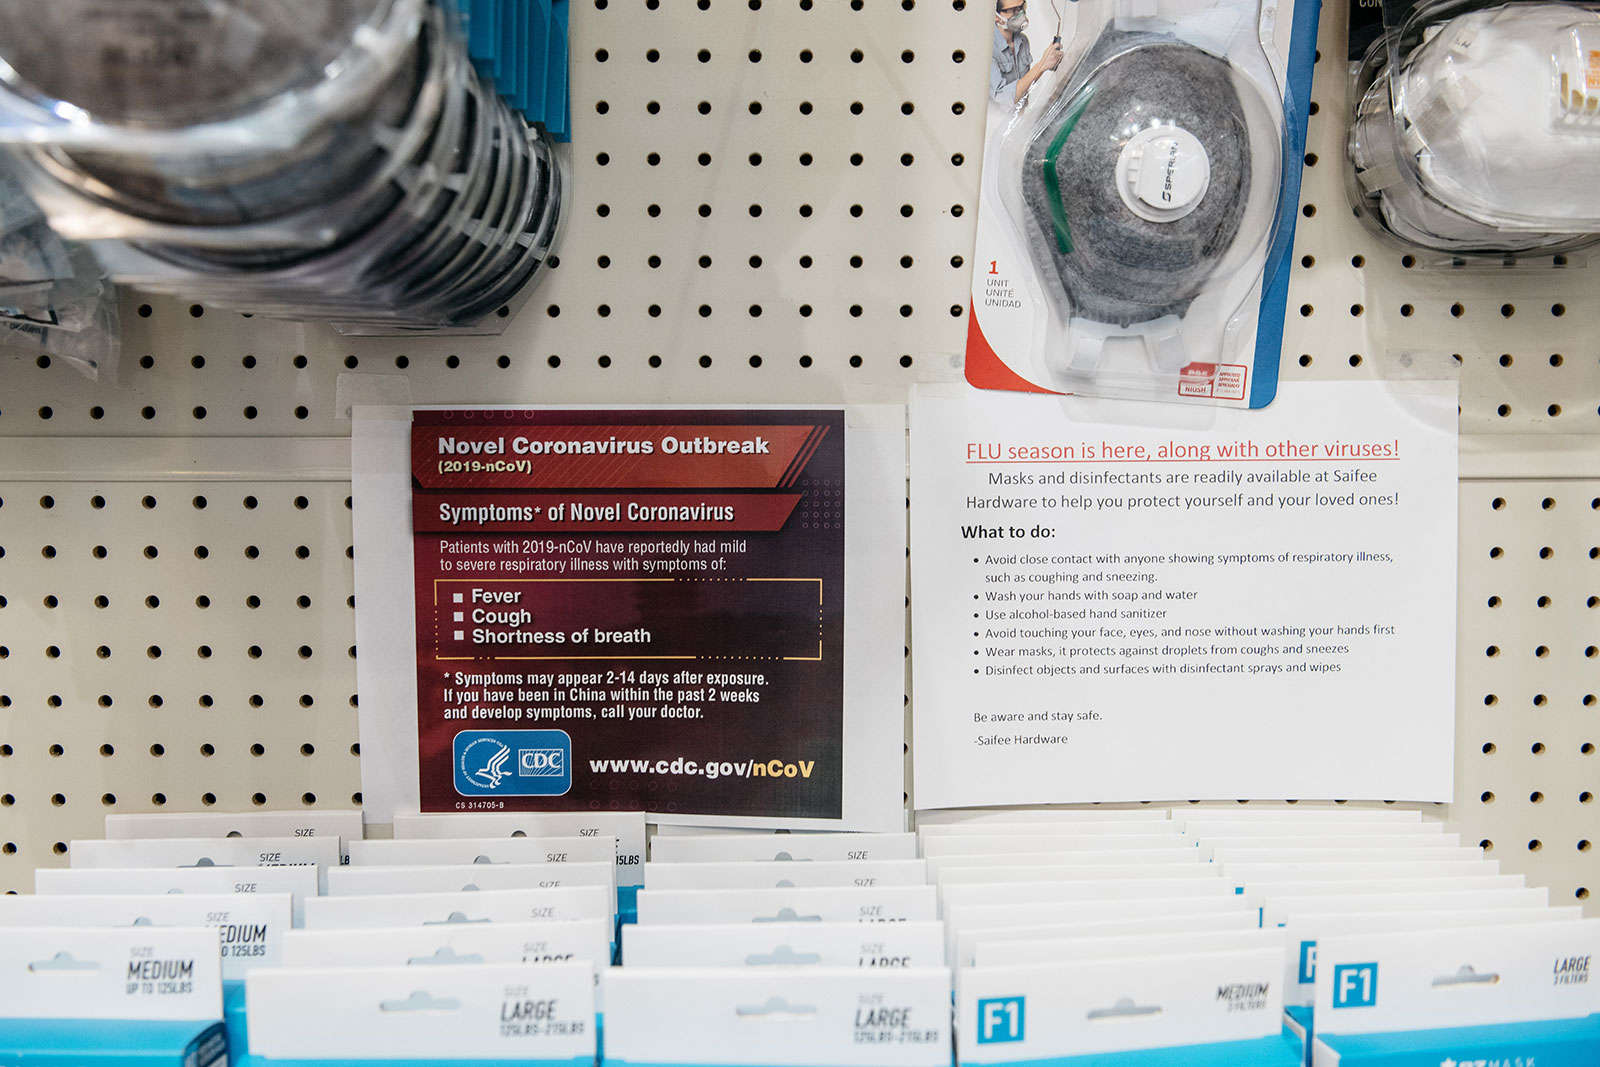 Signs detailing the Center for Disease Control'sadvice for combatting Coronavirus are displayed above facemasks at a Manhattan hardware store in New York City on February 26.